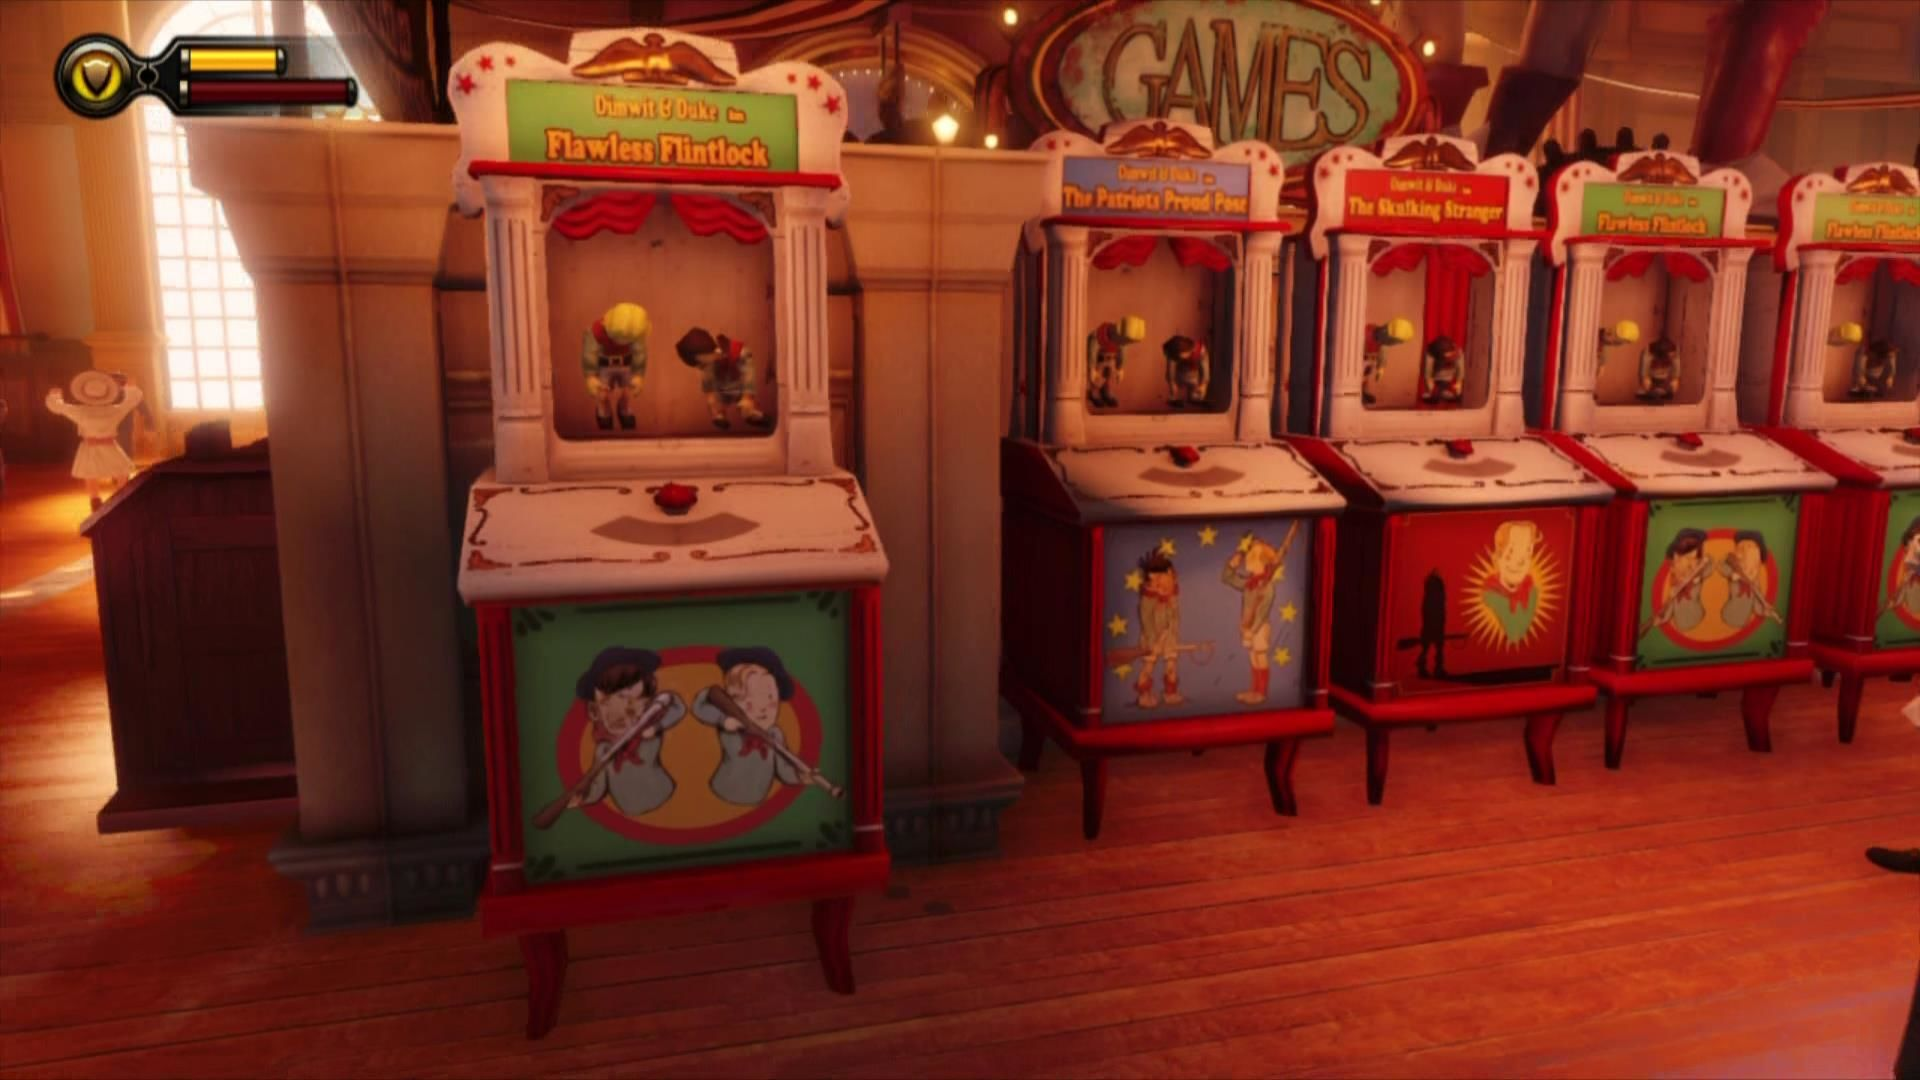 BioShock Infinite Xbox 360 Dimwit & Duke machines